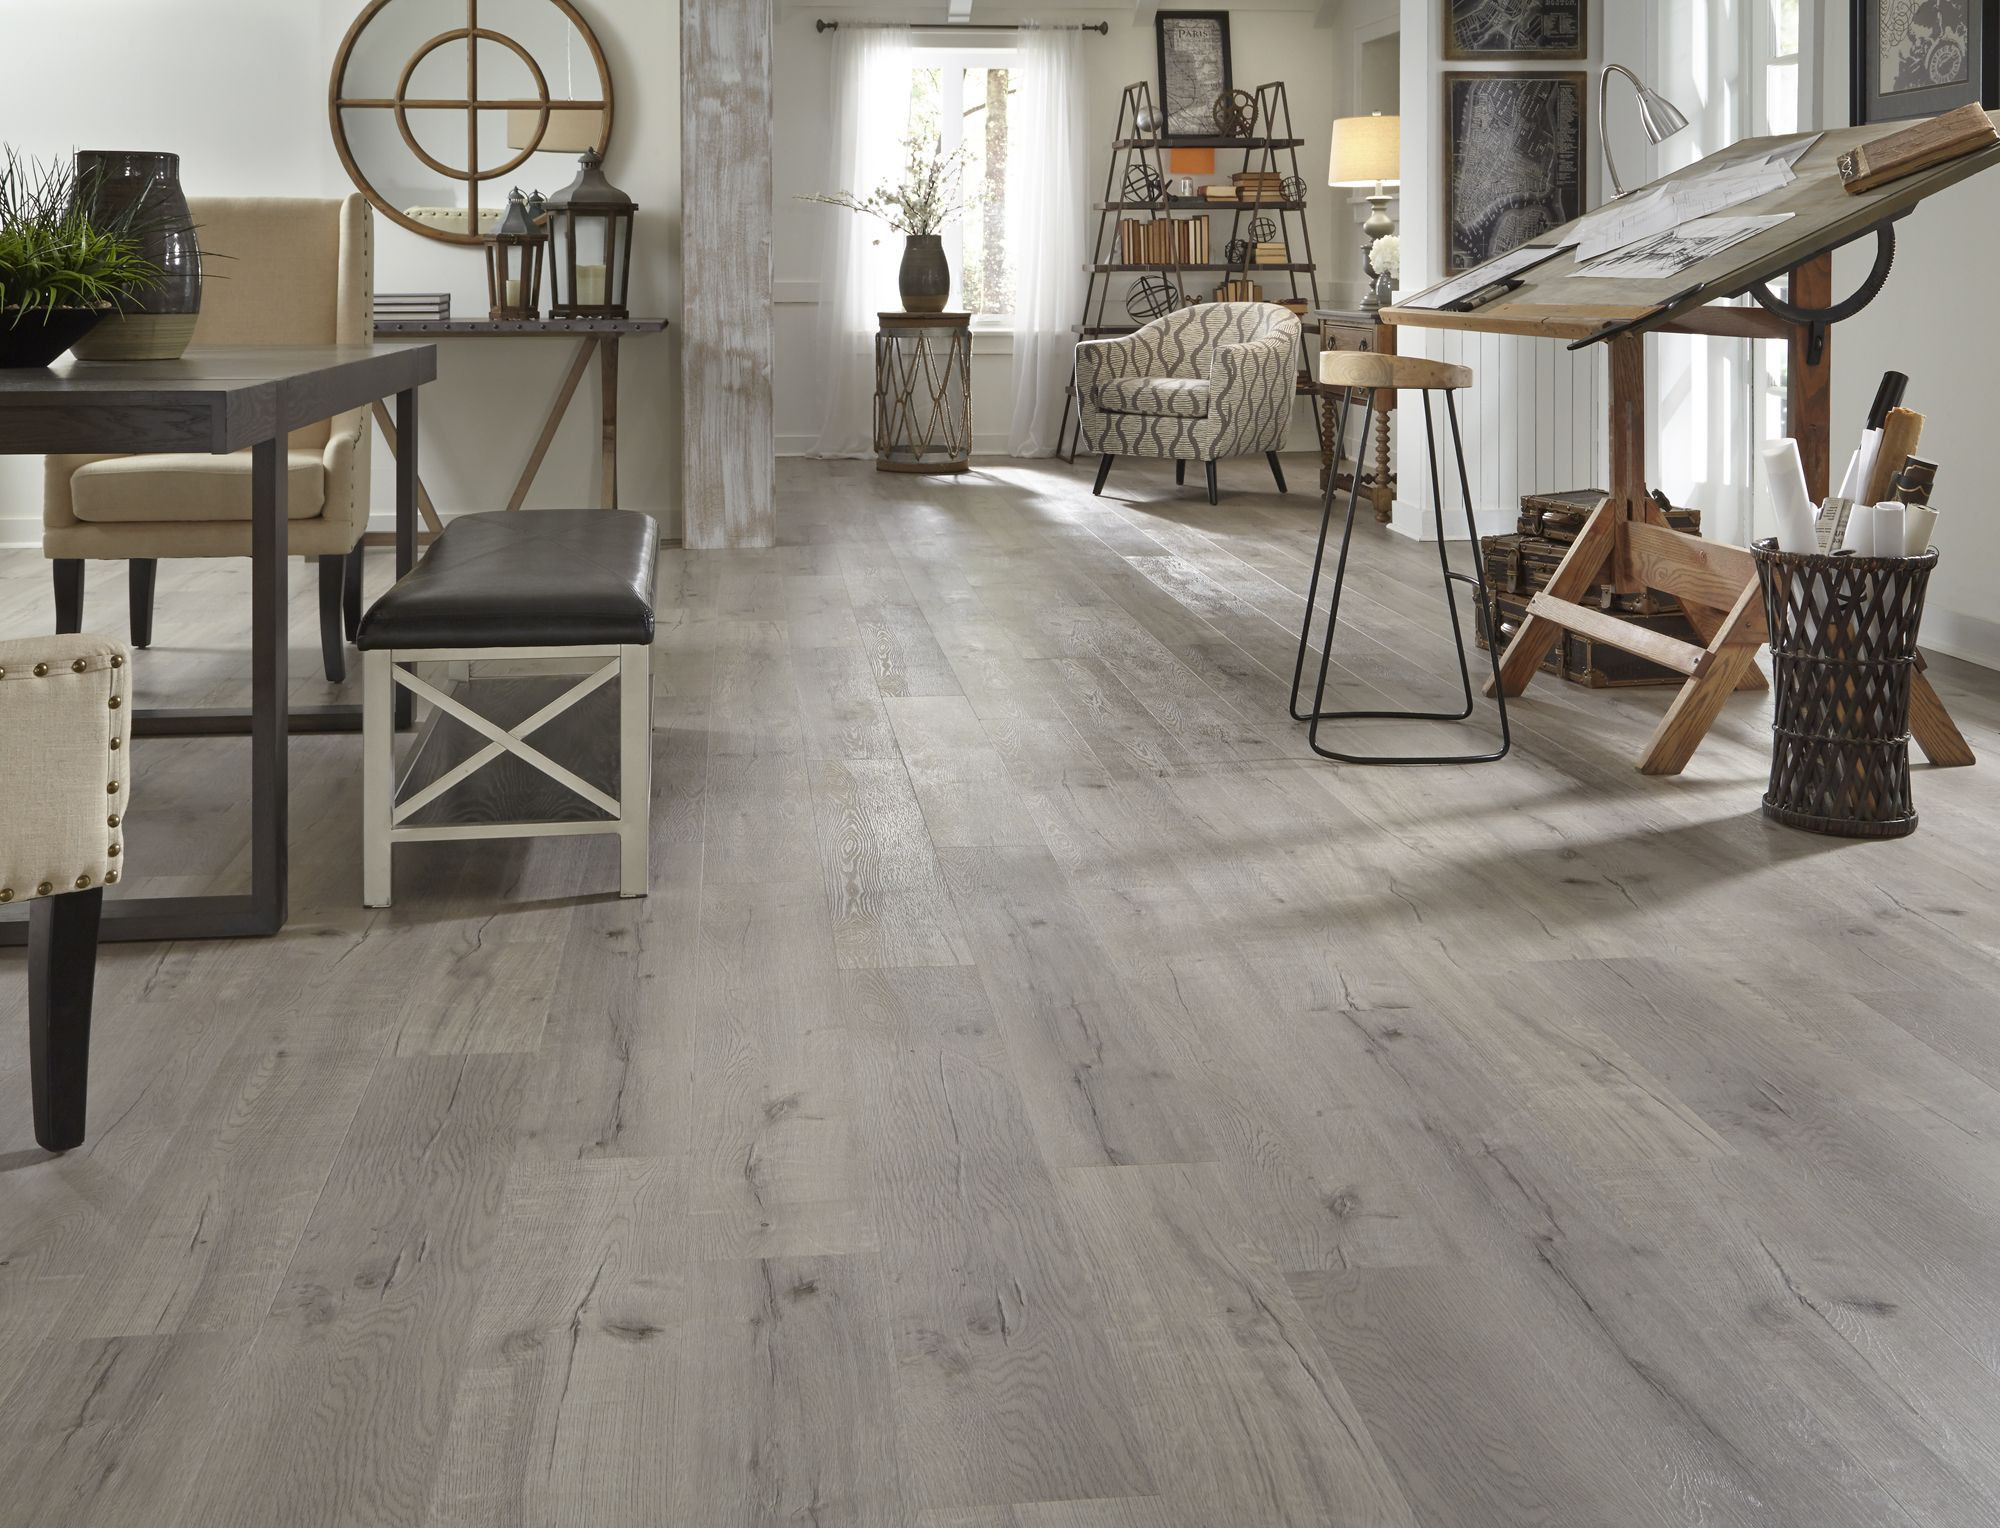 best hardwood floor store los angeles of wood floor stores near me 50 elegant tile to wood floor transition with regard to this fall flooring season see 100 new flooring styles like driftwood hickory evp it s part